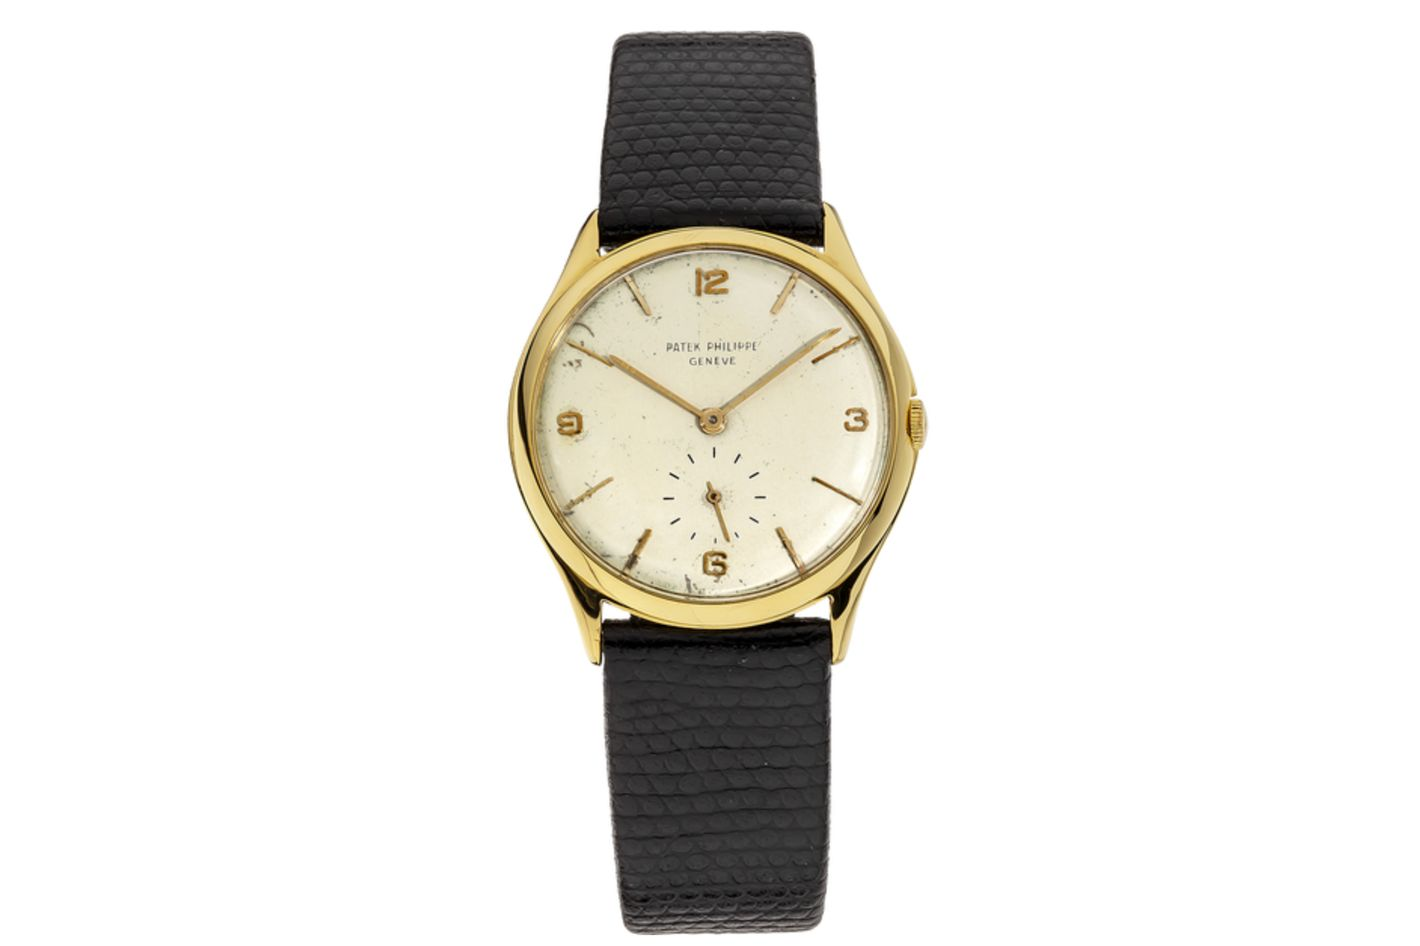 Pre-owned Patek Philippe Calatrava Circa 1960s Yellow Gold Manual